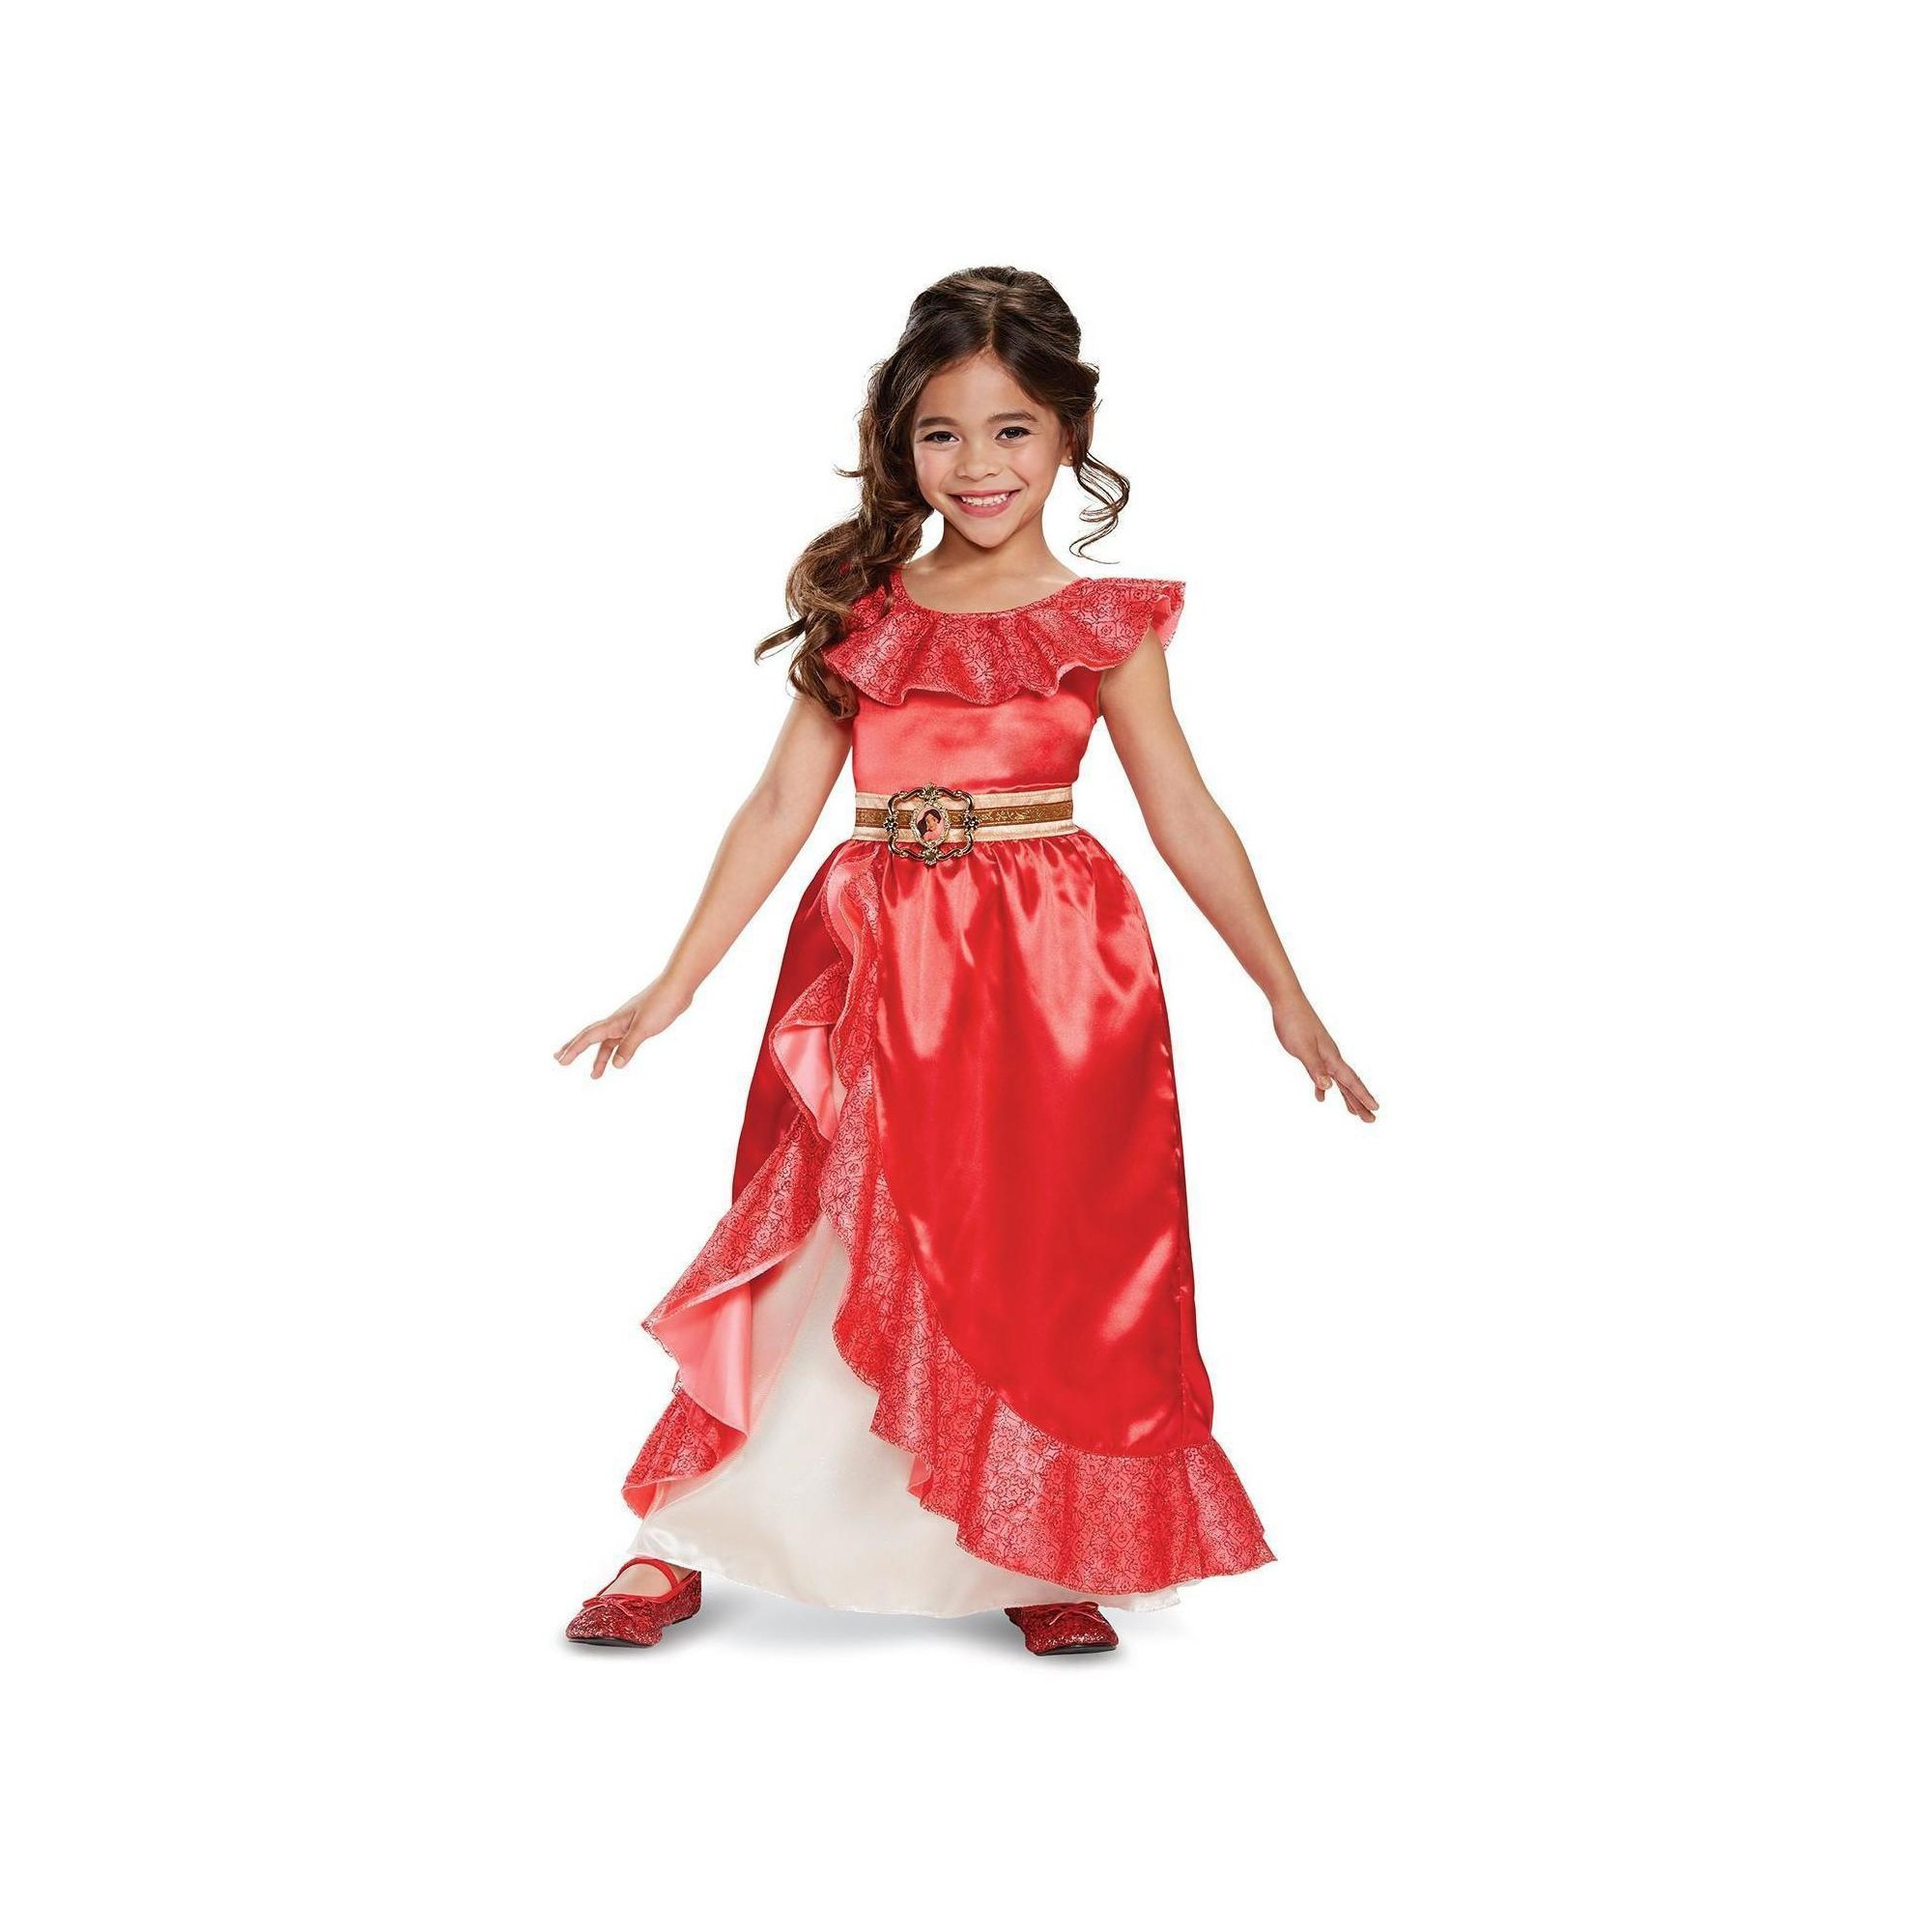 Disguise Girlsu0027 Elena of Avalor Elena Deluxe Adventure Gown Costume - Toddler 3T-4T. Children CostumesHalloween CostumesTargetInfant ...  sc 1 st  Pinterest & Disguise Girlsu0027 Elena of Avalor Elena Deluxe Adventure Gown Costume ...